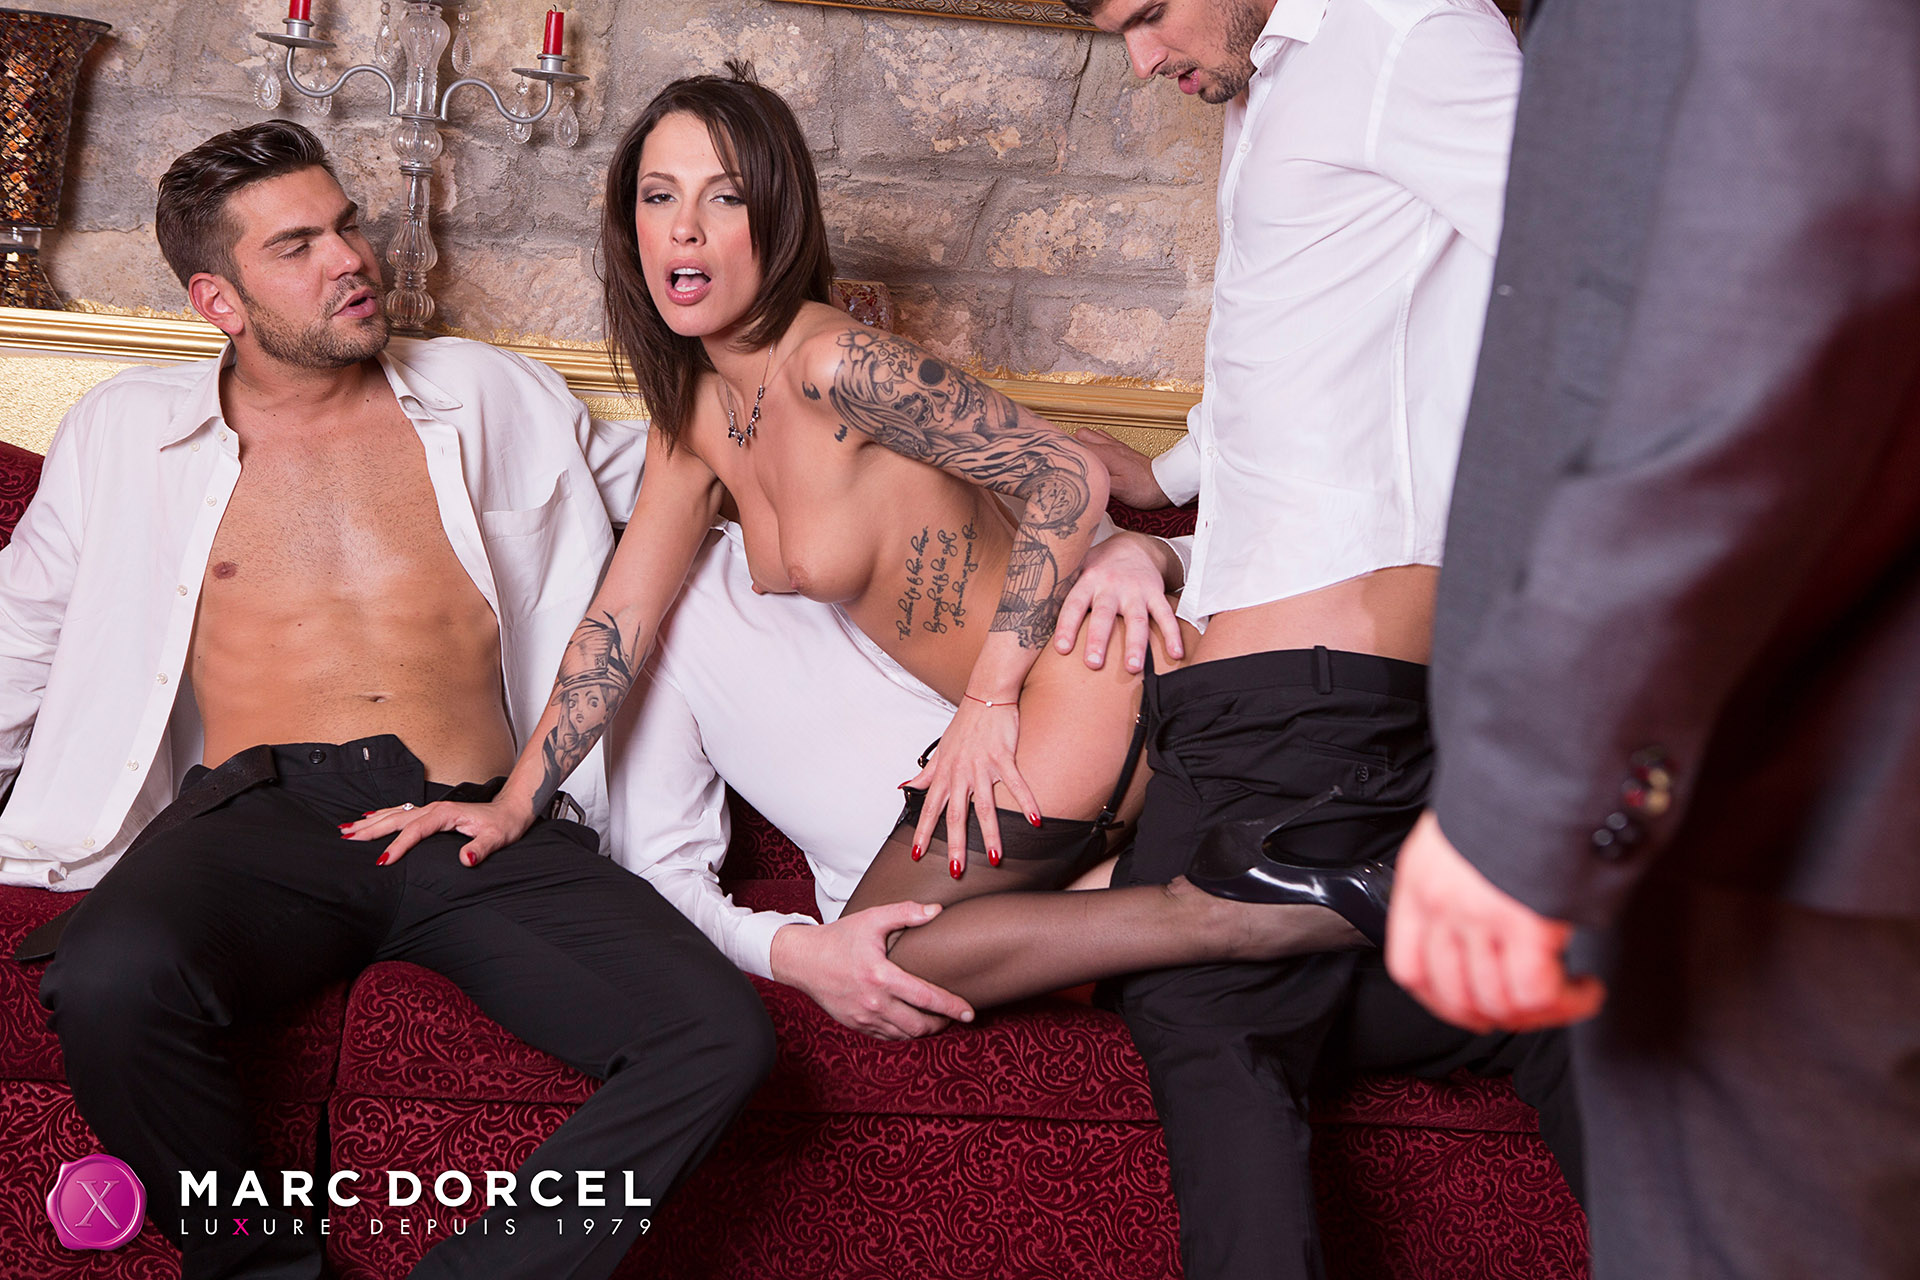 Nikita Bellucci In Hardcore Sex Party With 4 Men - 4K Free -6694